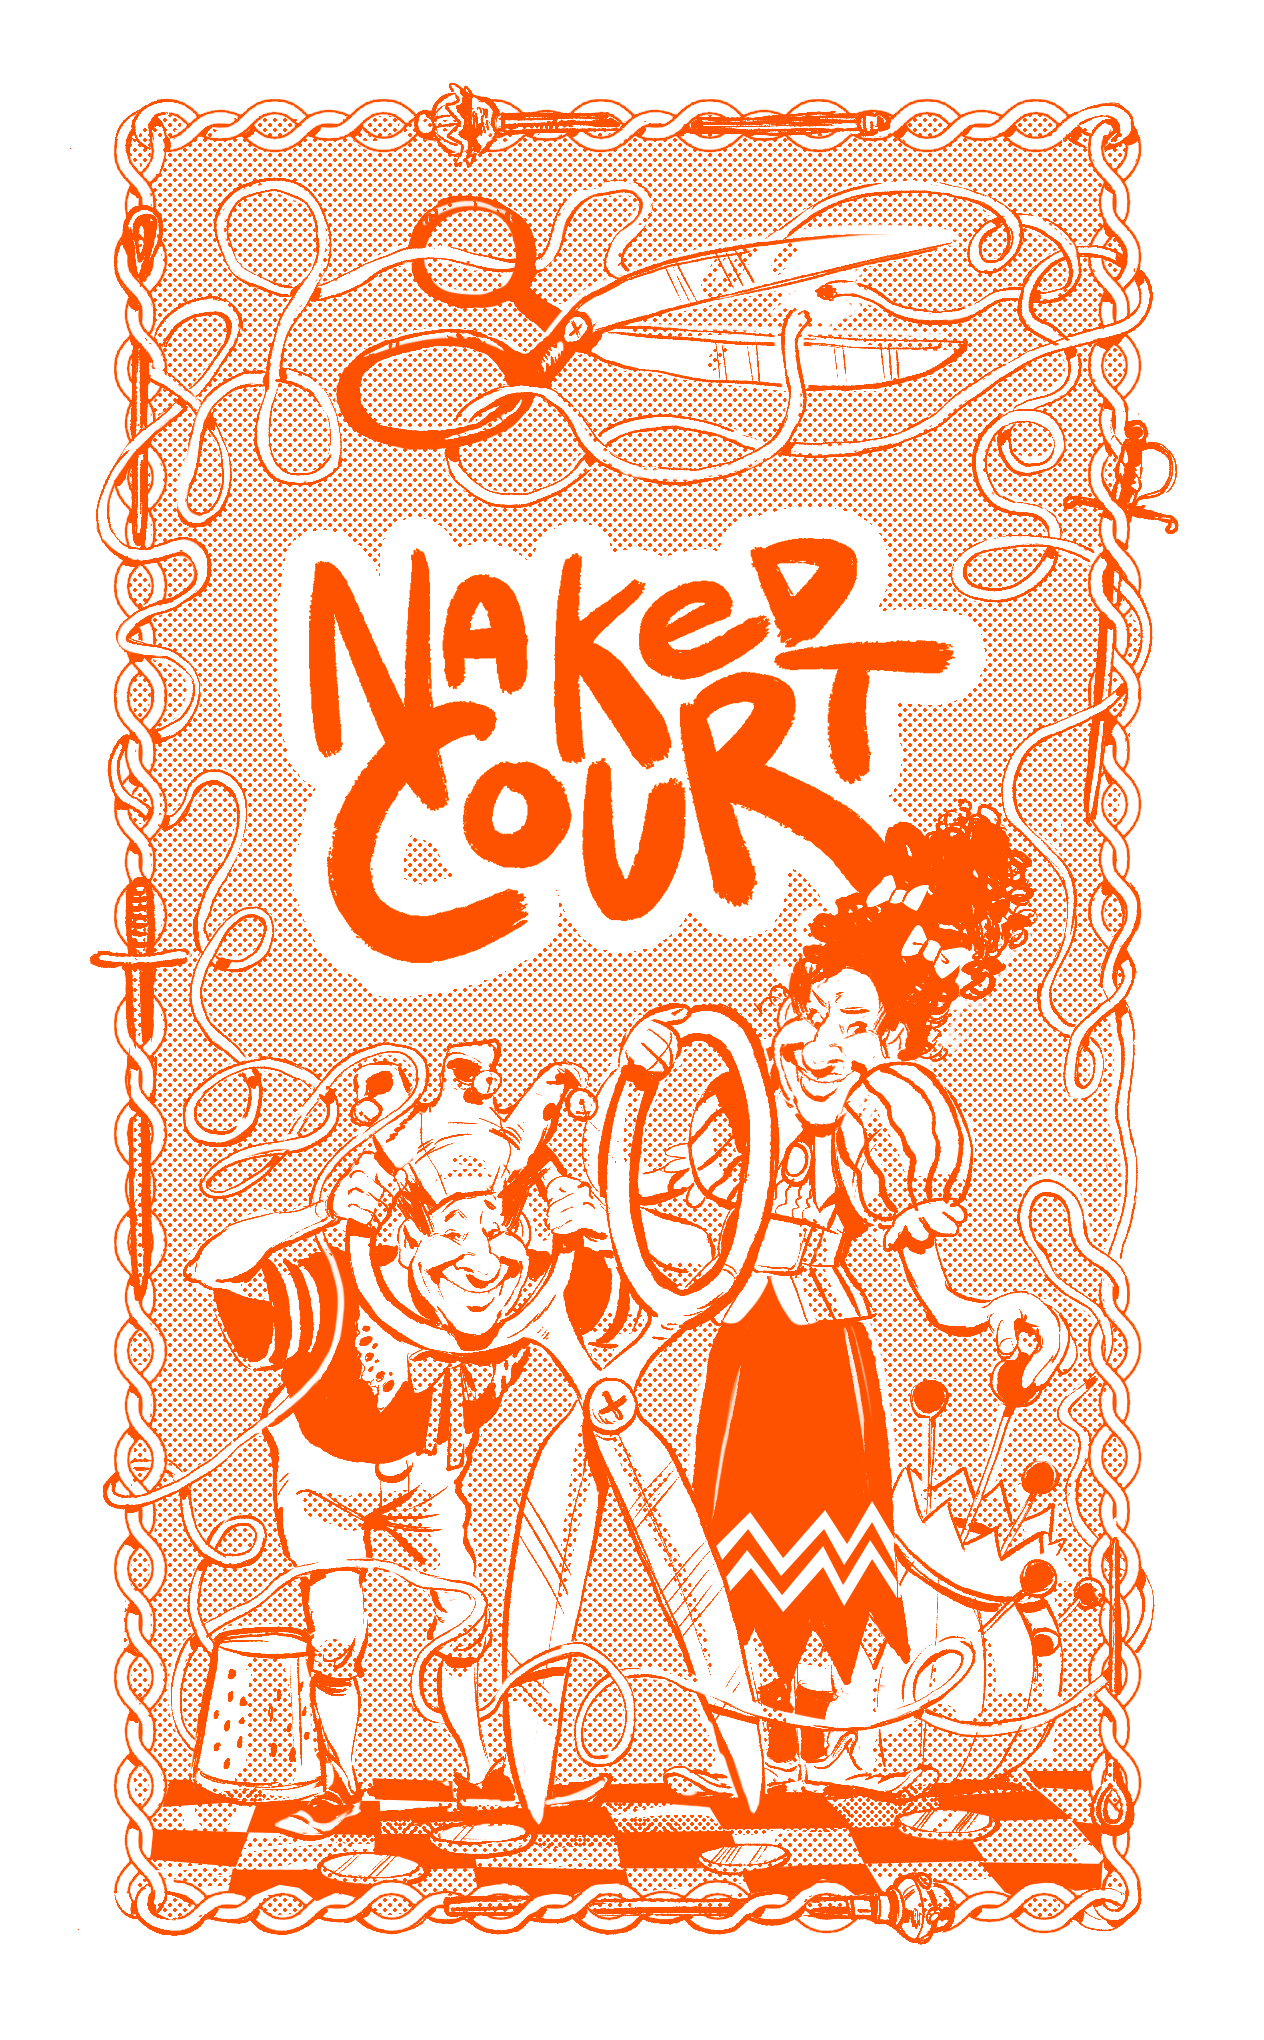 Back of a Naked Court: The Card Game card, featuring the tailors